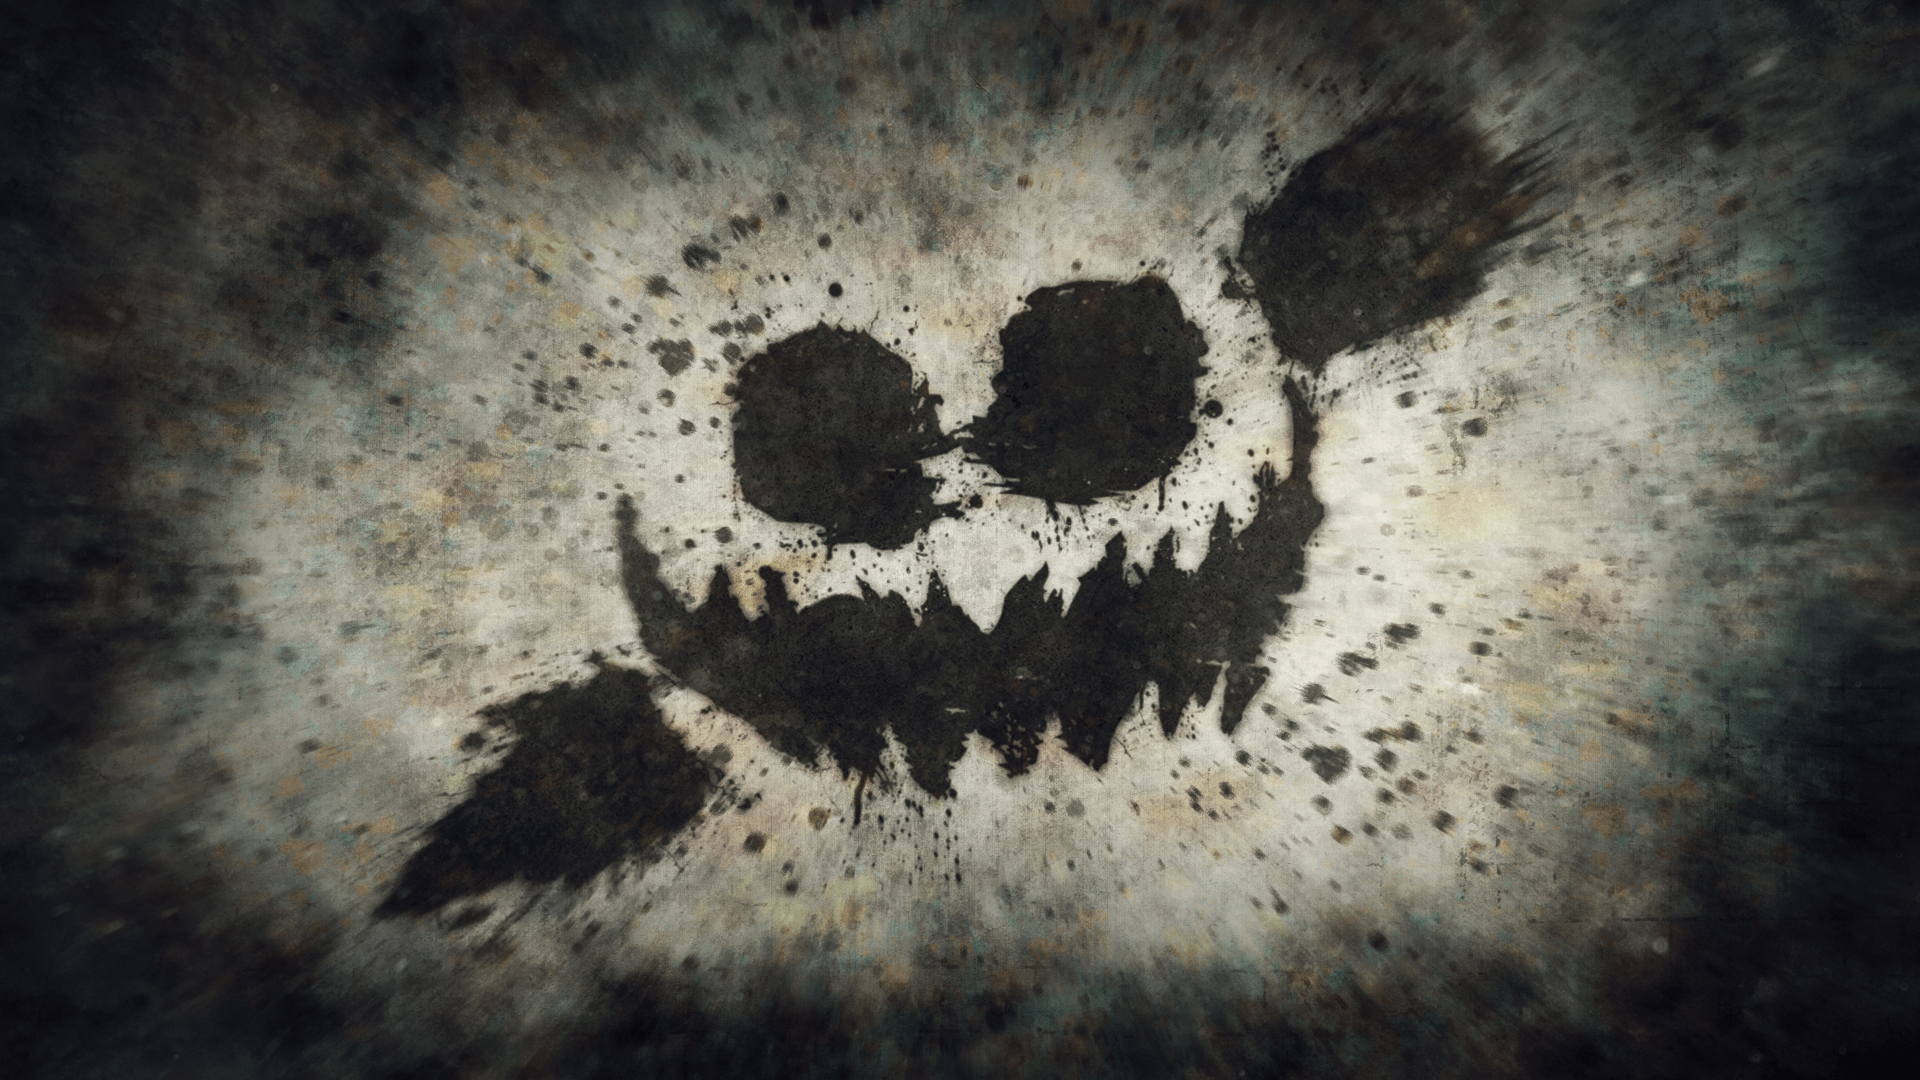 knife party wallpapers wallpaper cave - Halloween Party Wallpaper